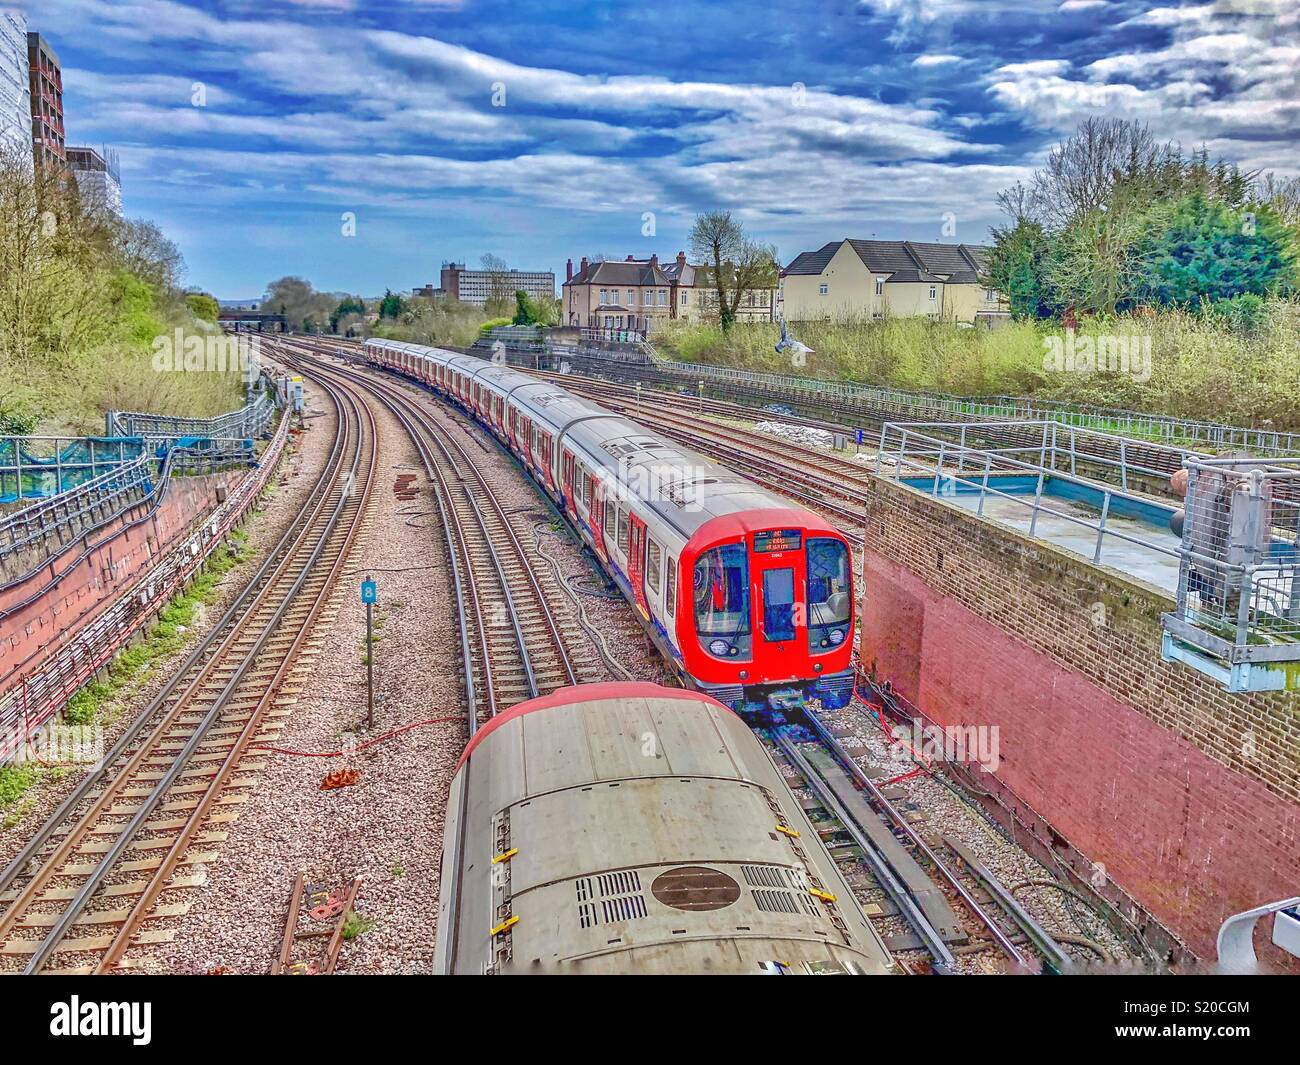 London Underground trains passing by each other in west London. - Stock Image